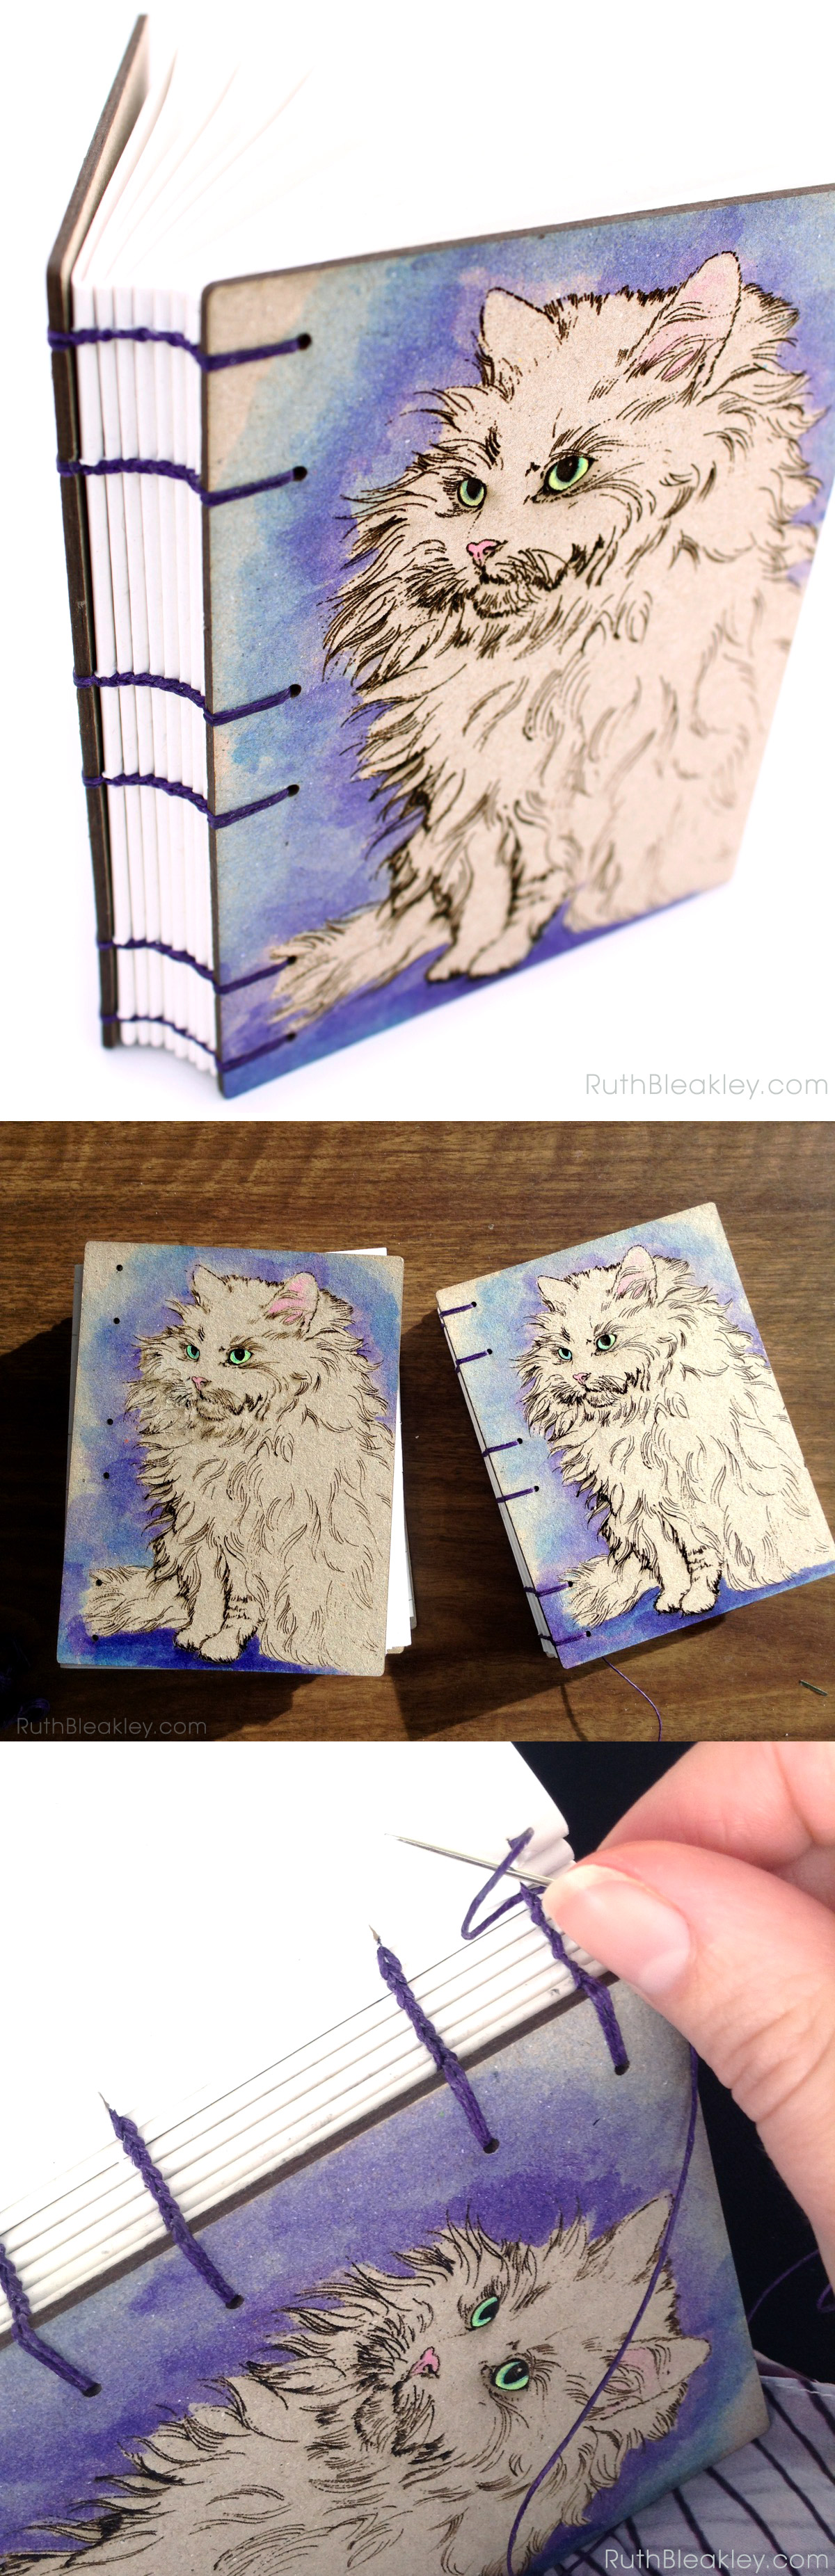 Handmade gift for Cat Lovers Purple Cat Journal handbound by Ruth Bleakley